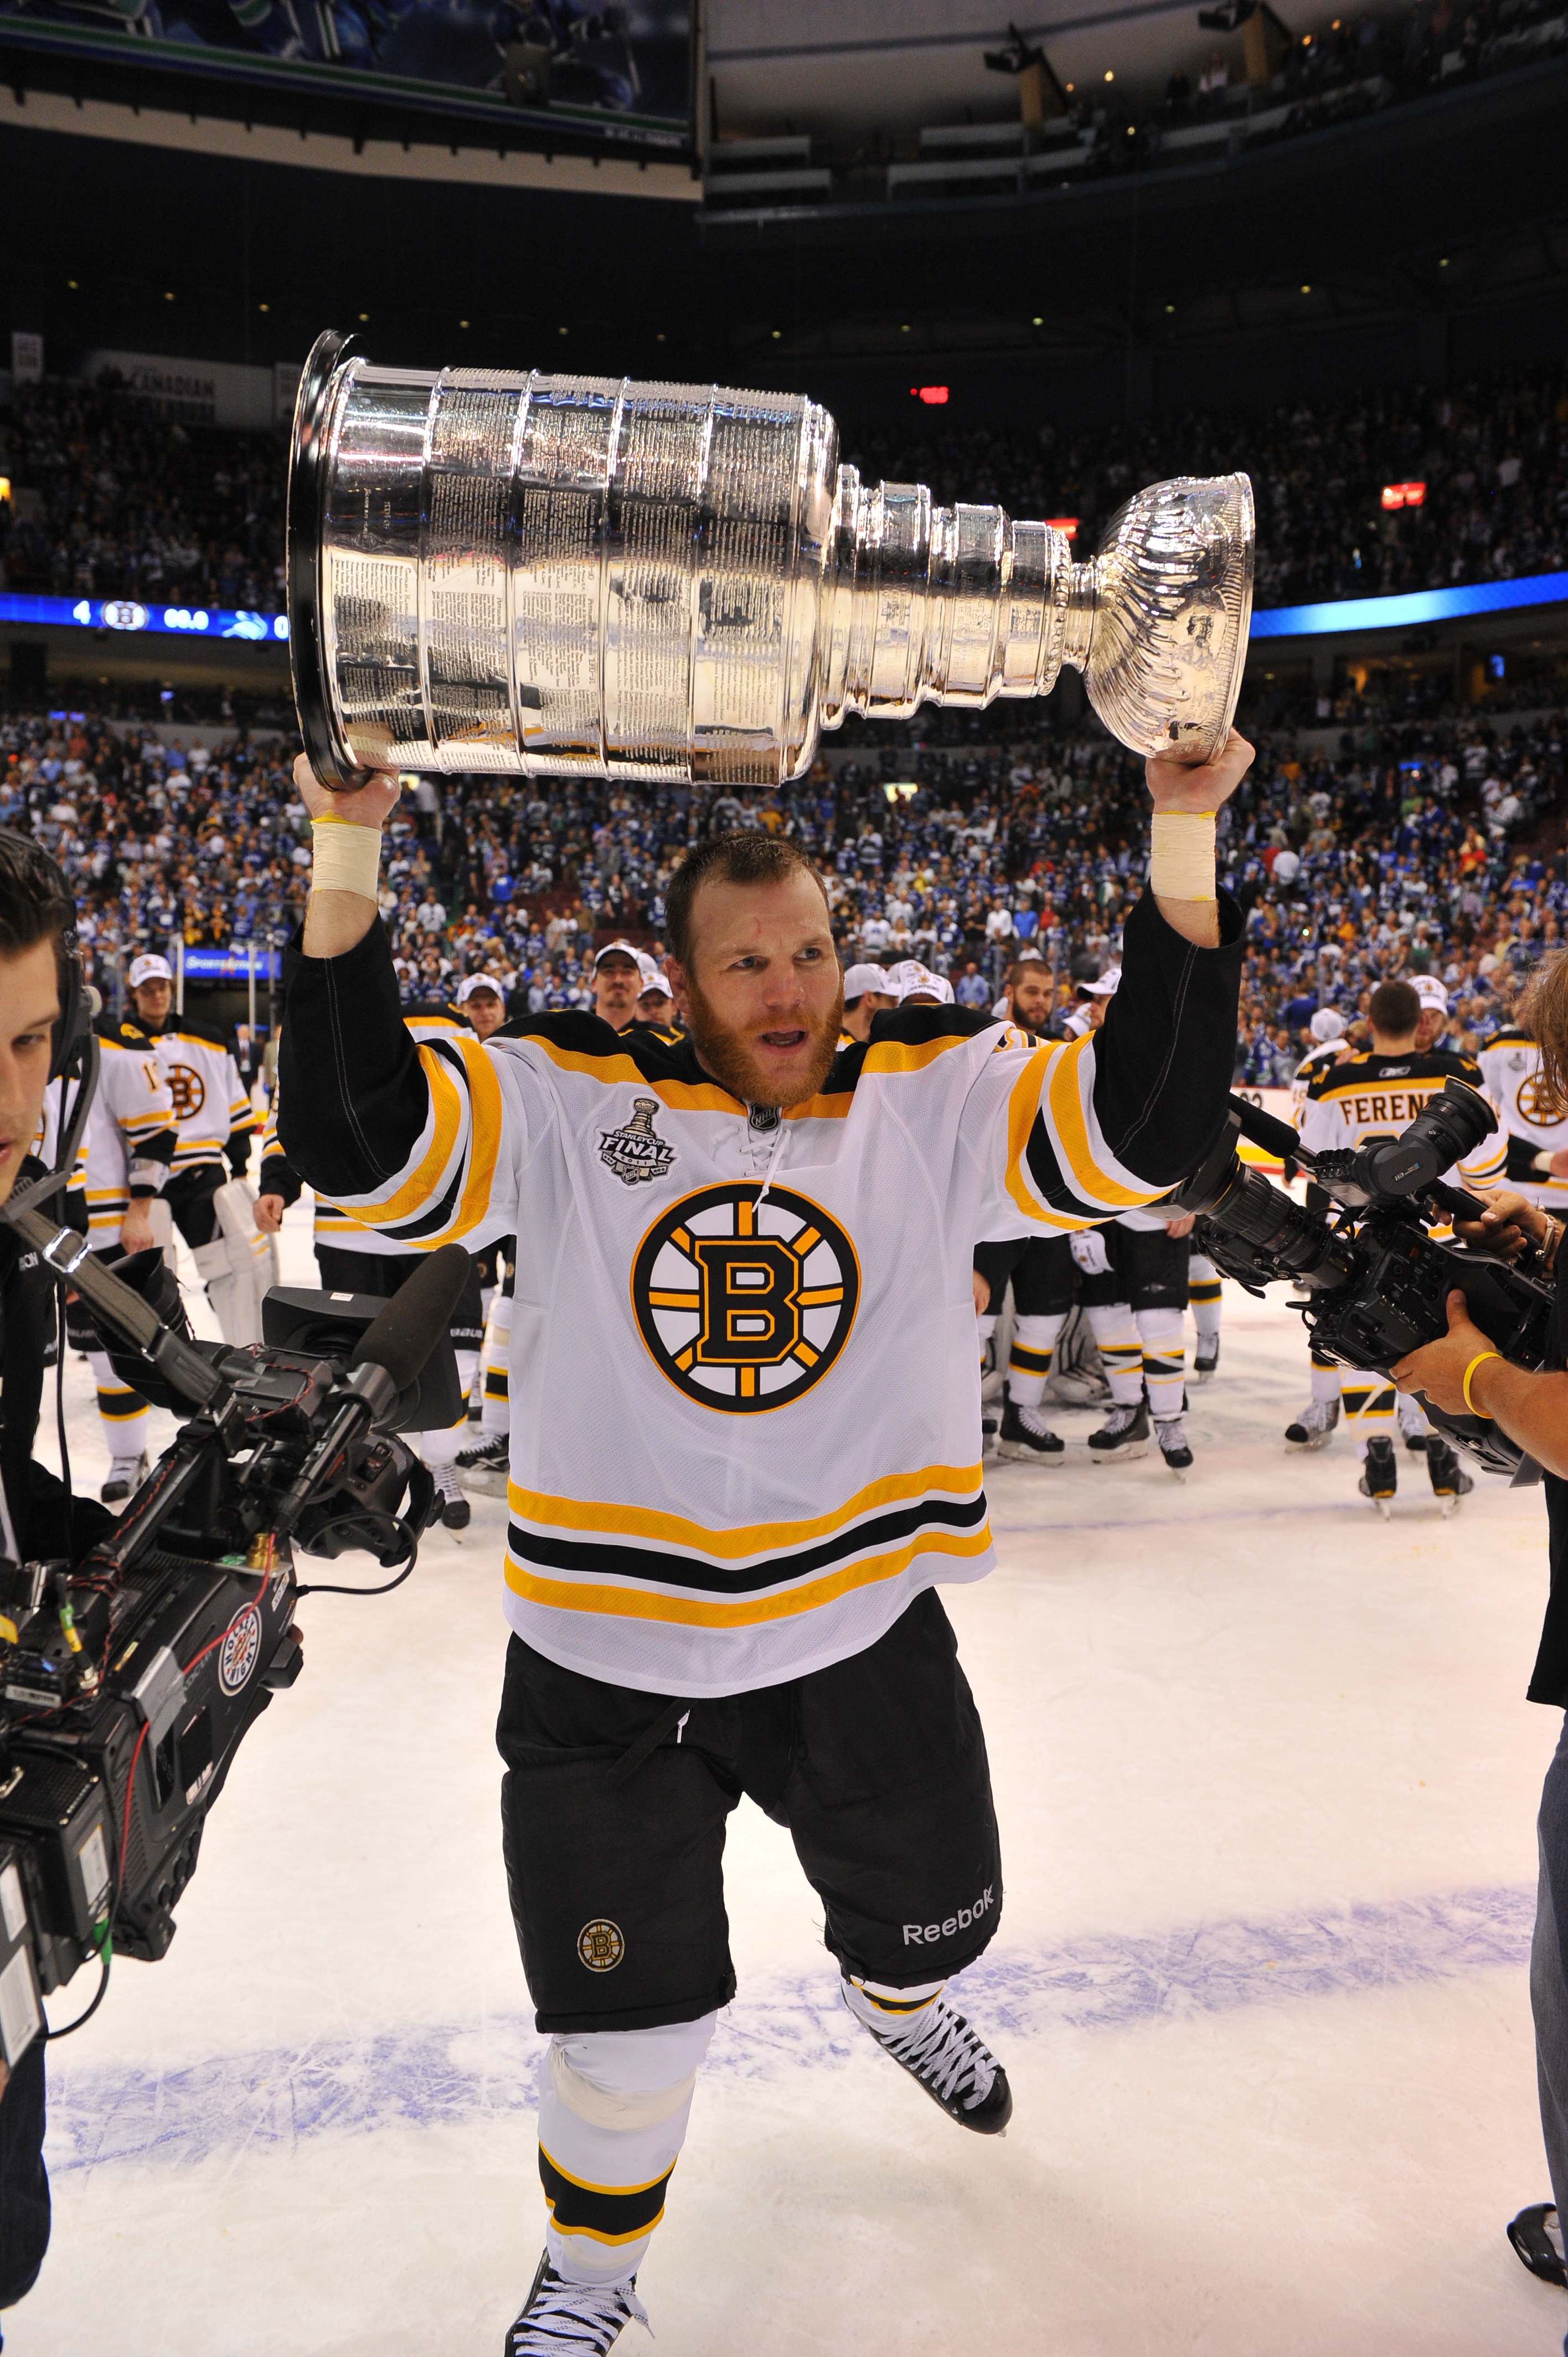 shawn thornton and the stanley cup